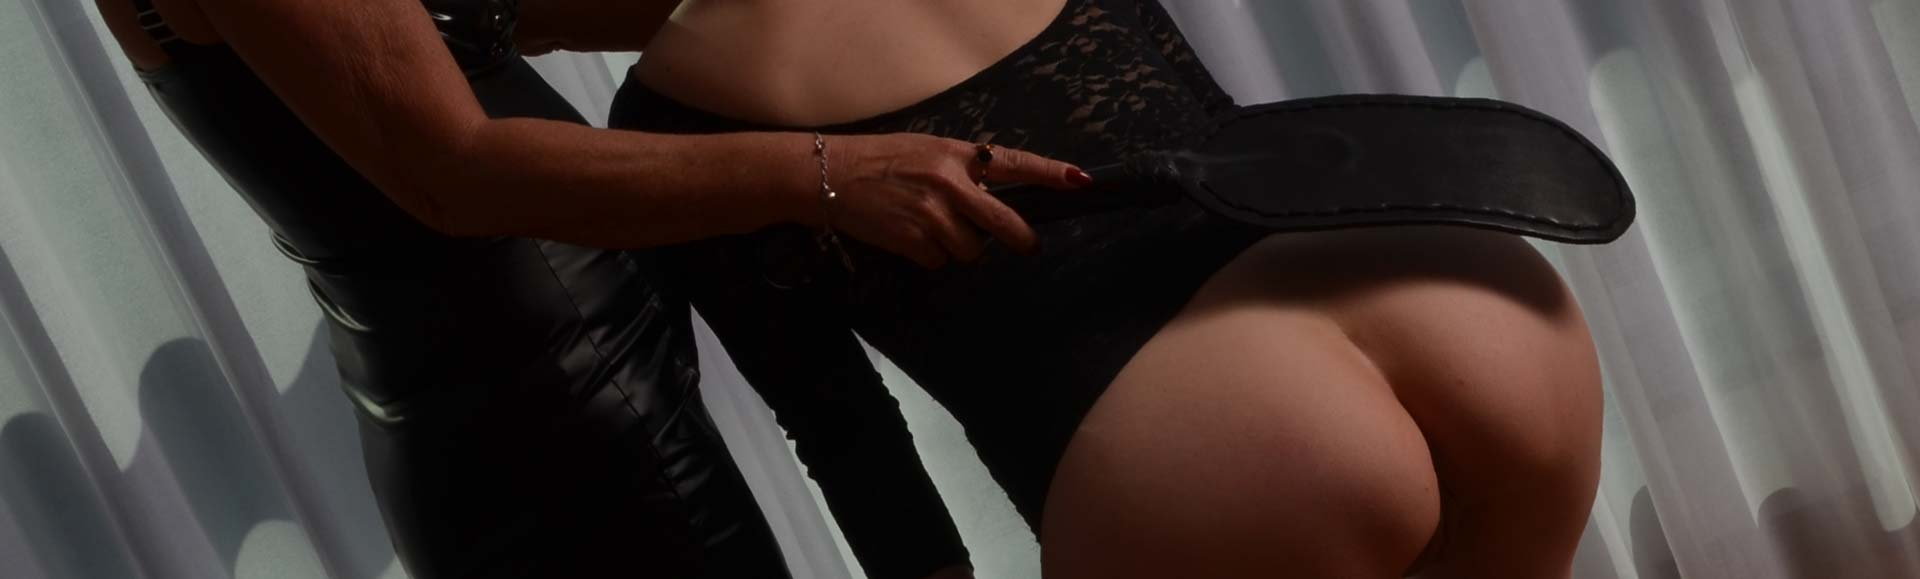 domina-begleit-escort-monique-header